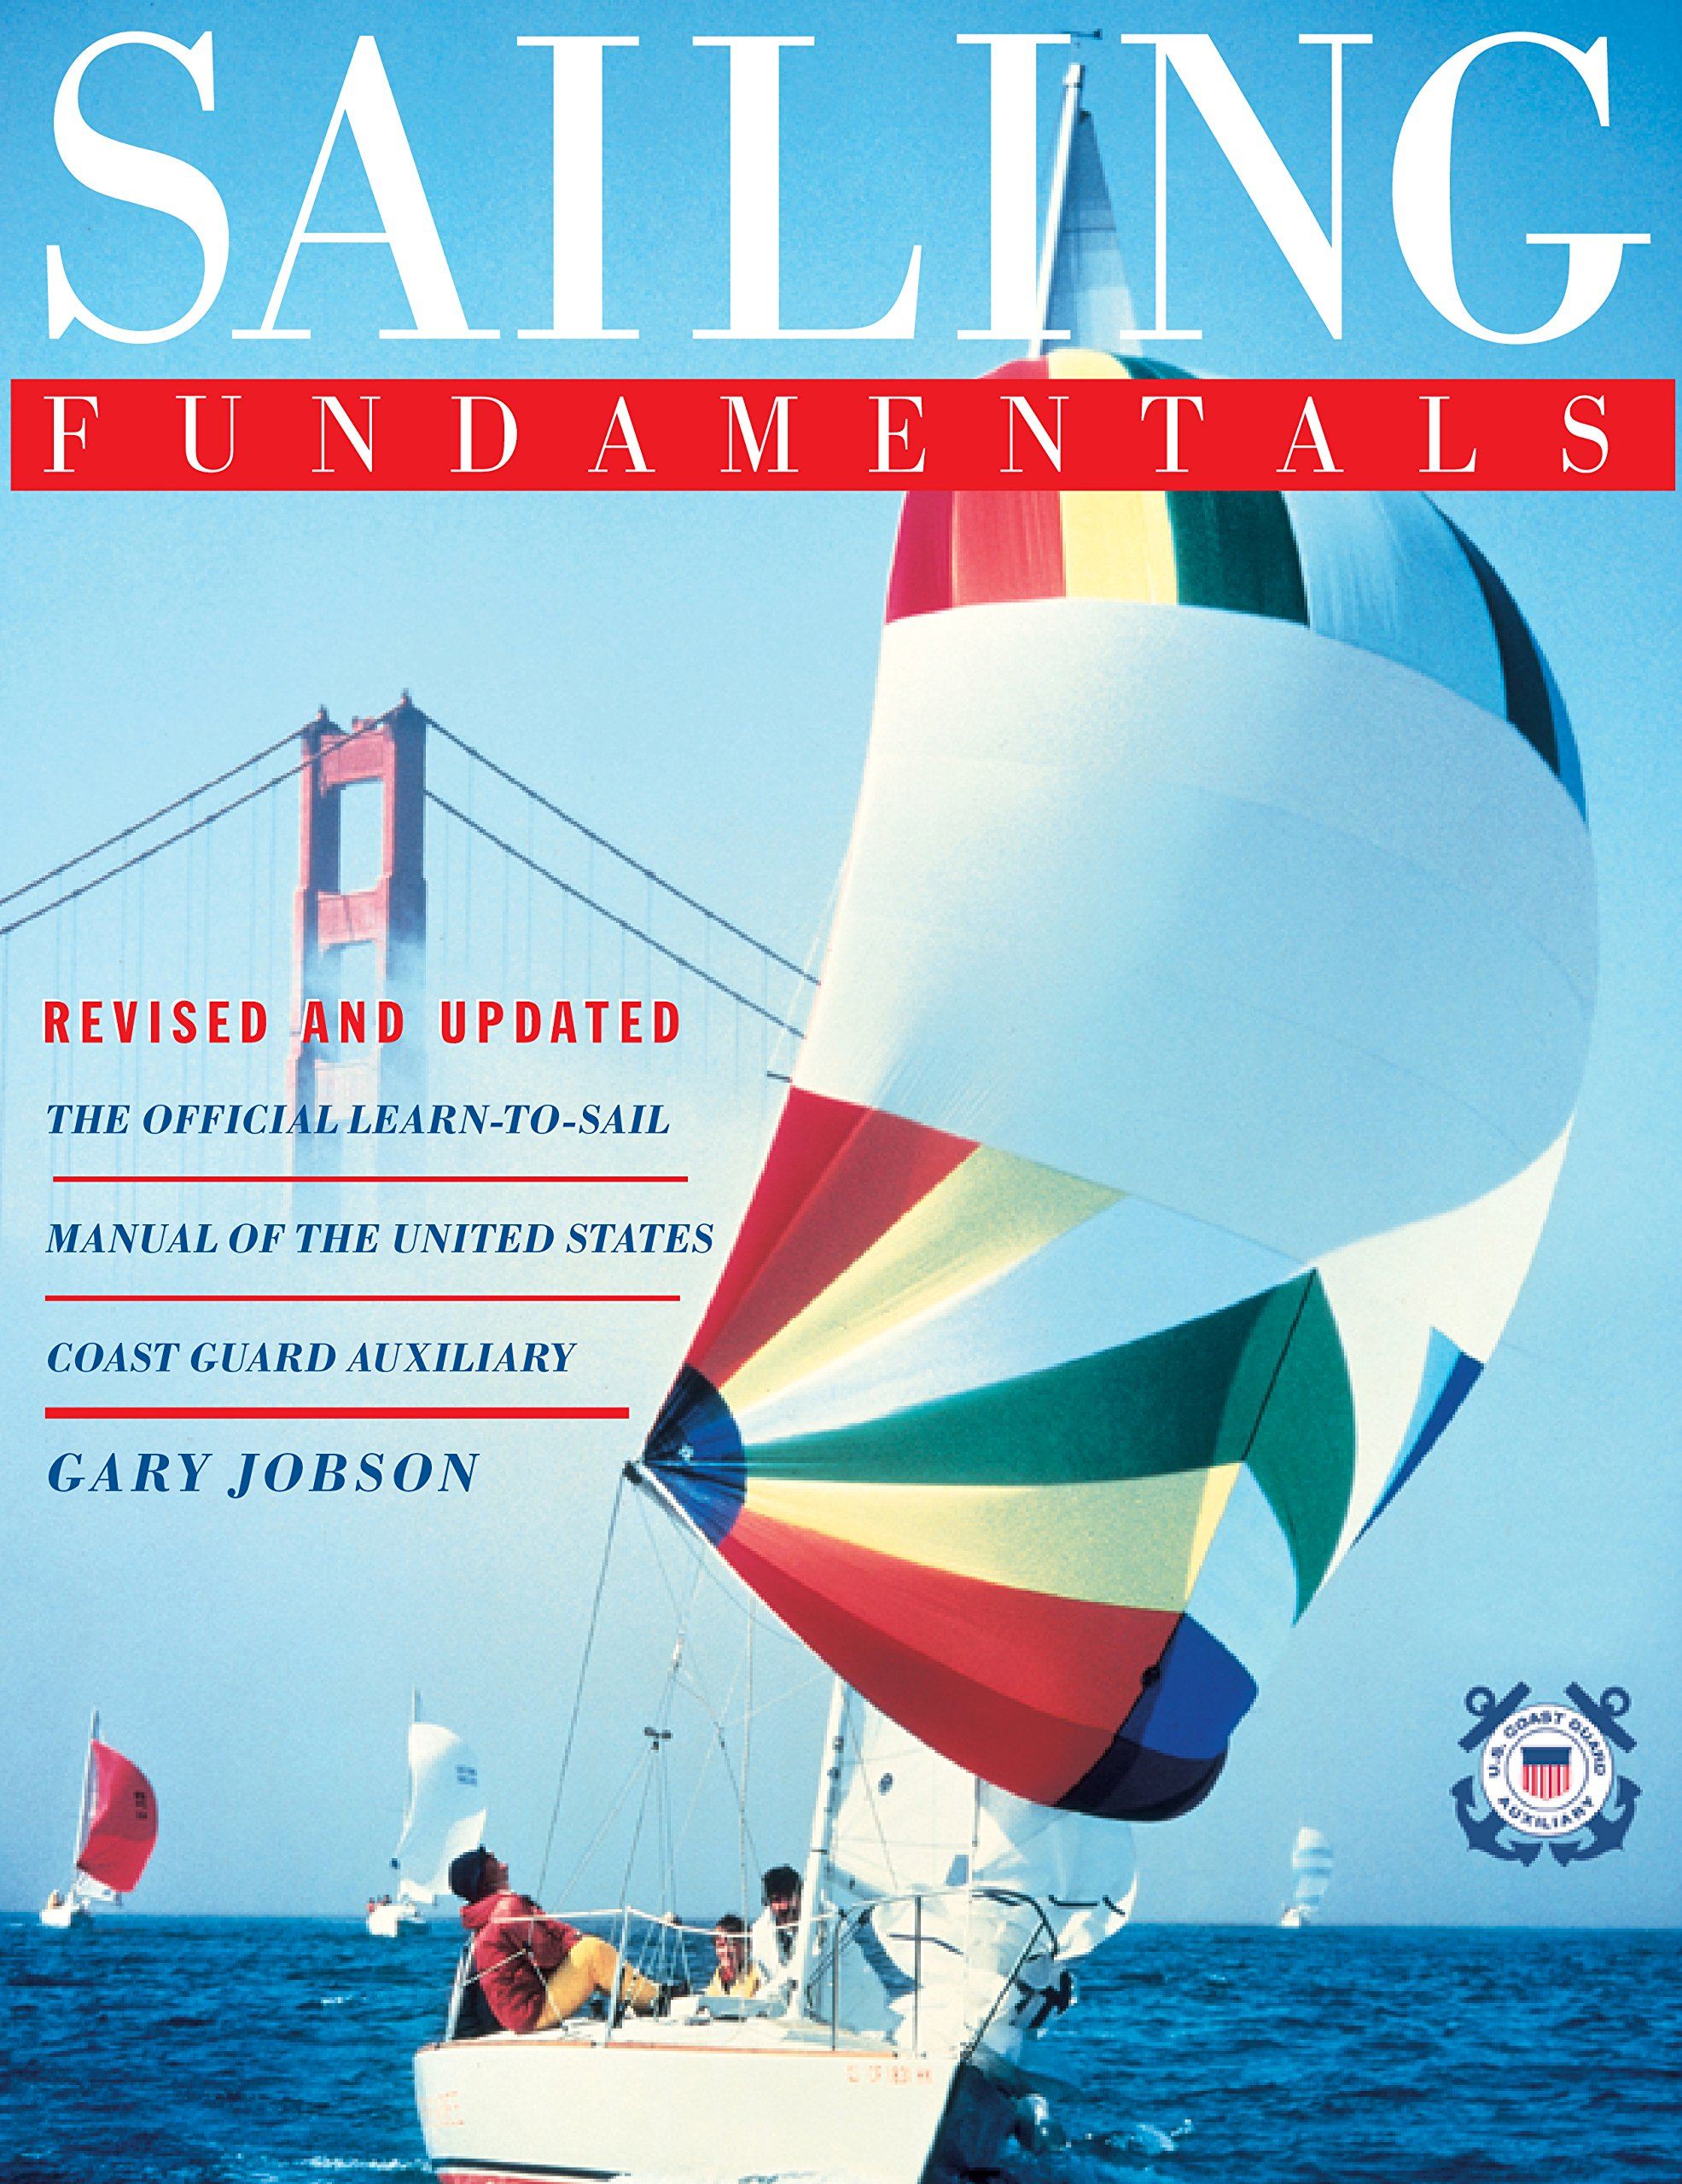 Sailing fundamentals gary jobson 9780743273084 amazon books fandeluxe Images